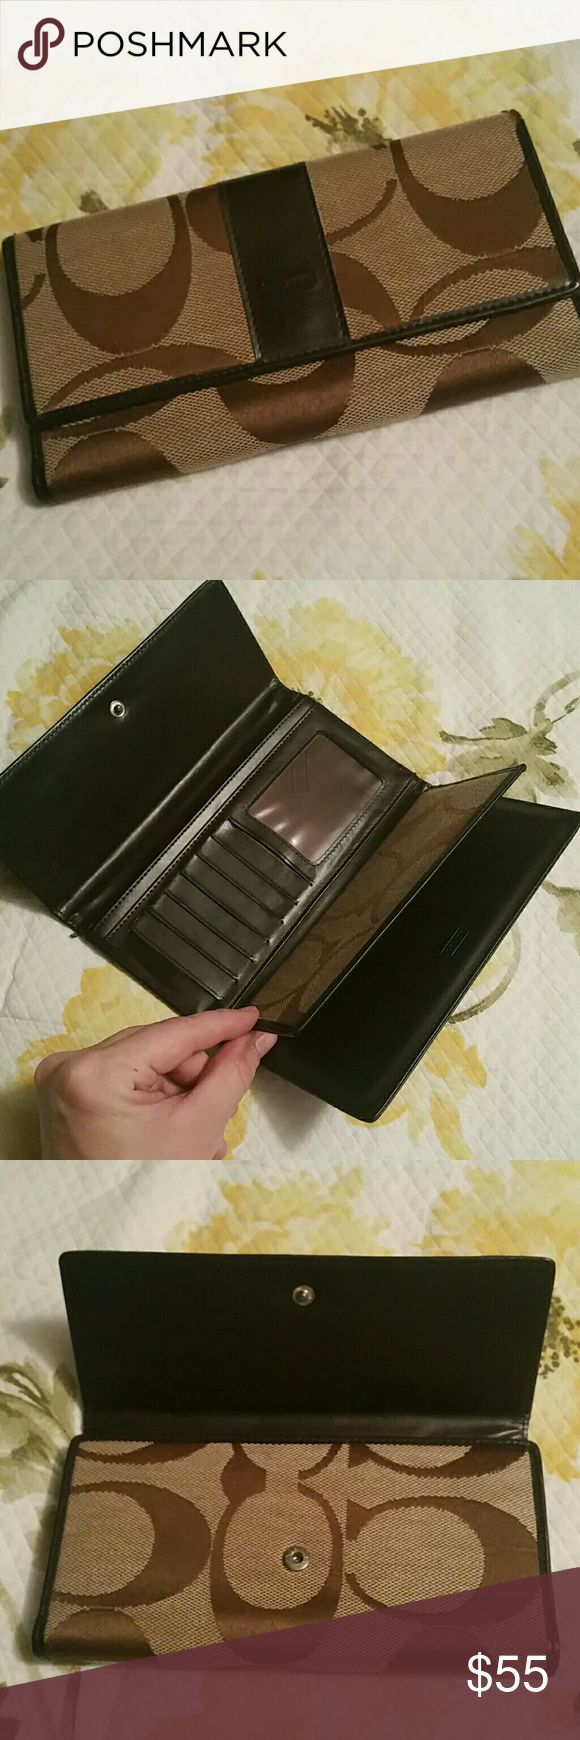 Coach wallet Coach wallet without tags Coach Bags Wallets